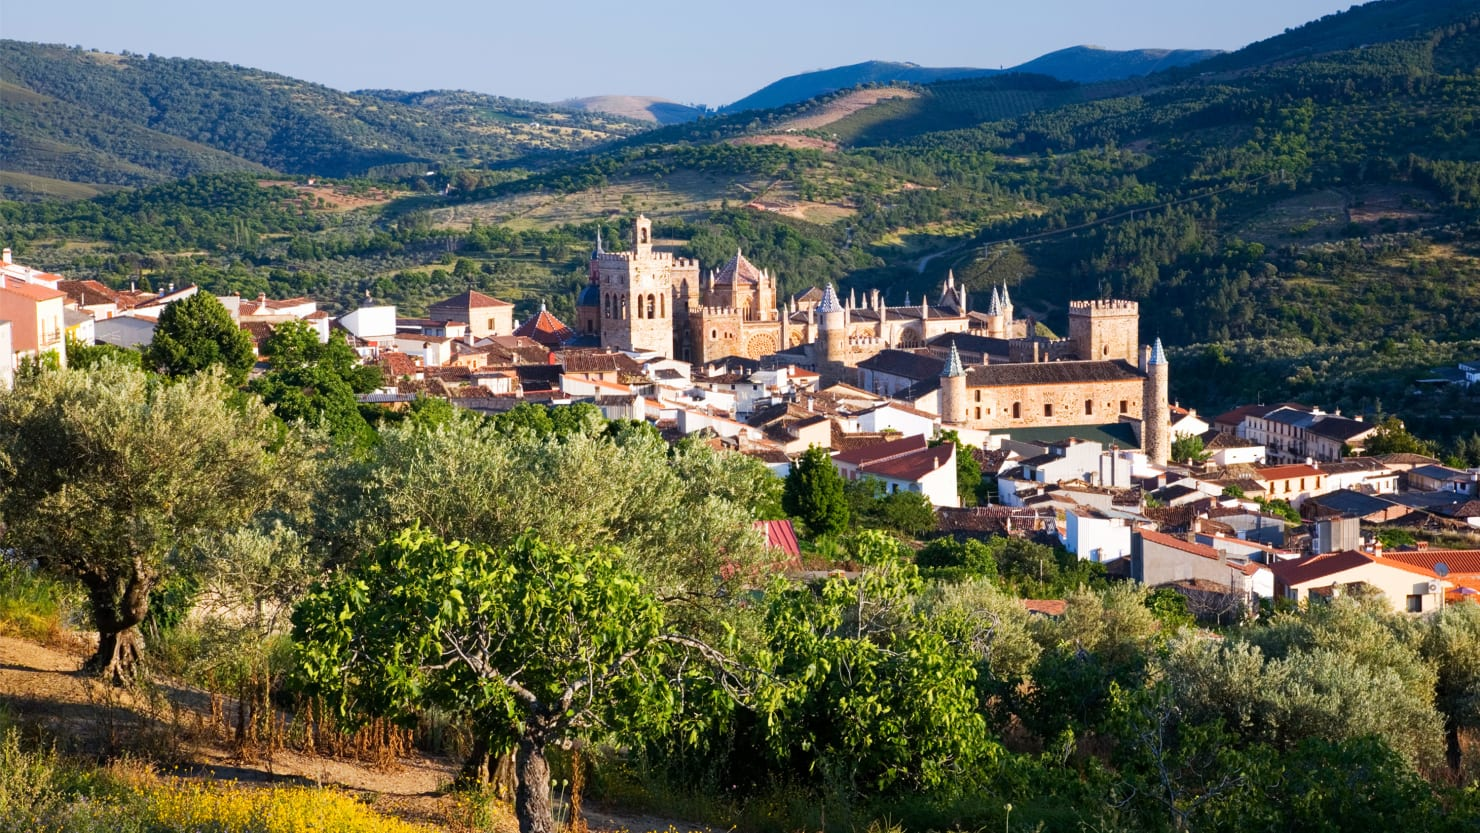 This Ancient City Should Be Your First Stop in Spain Post-Pandemic